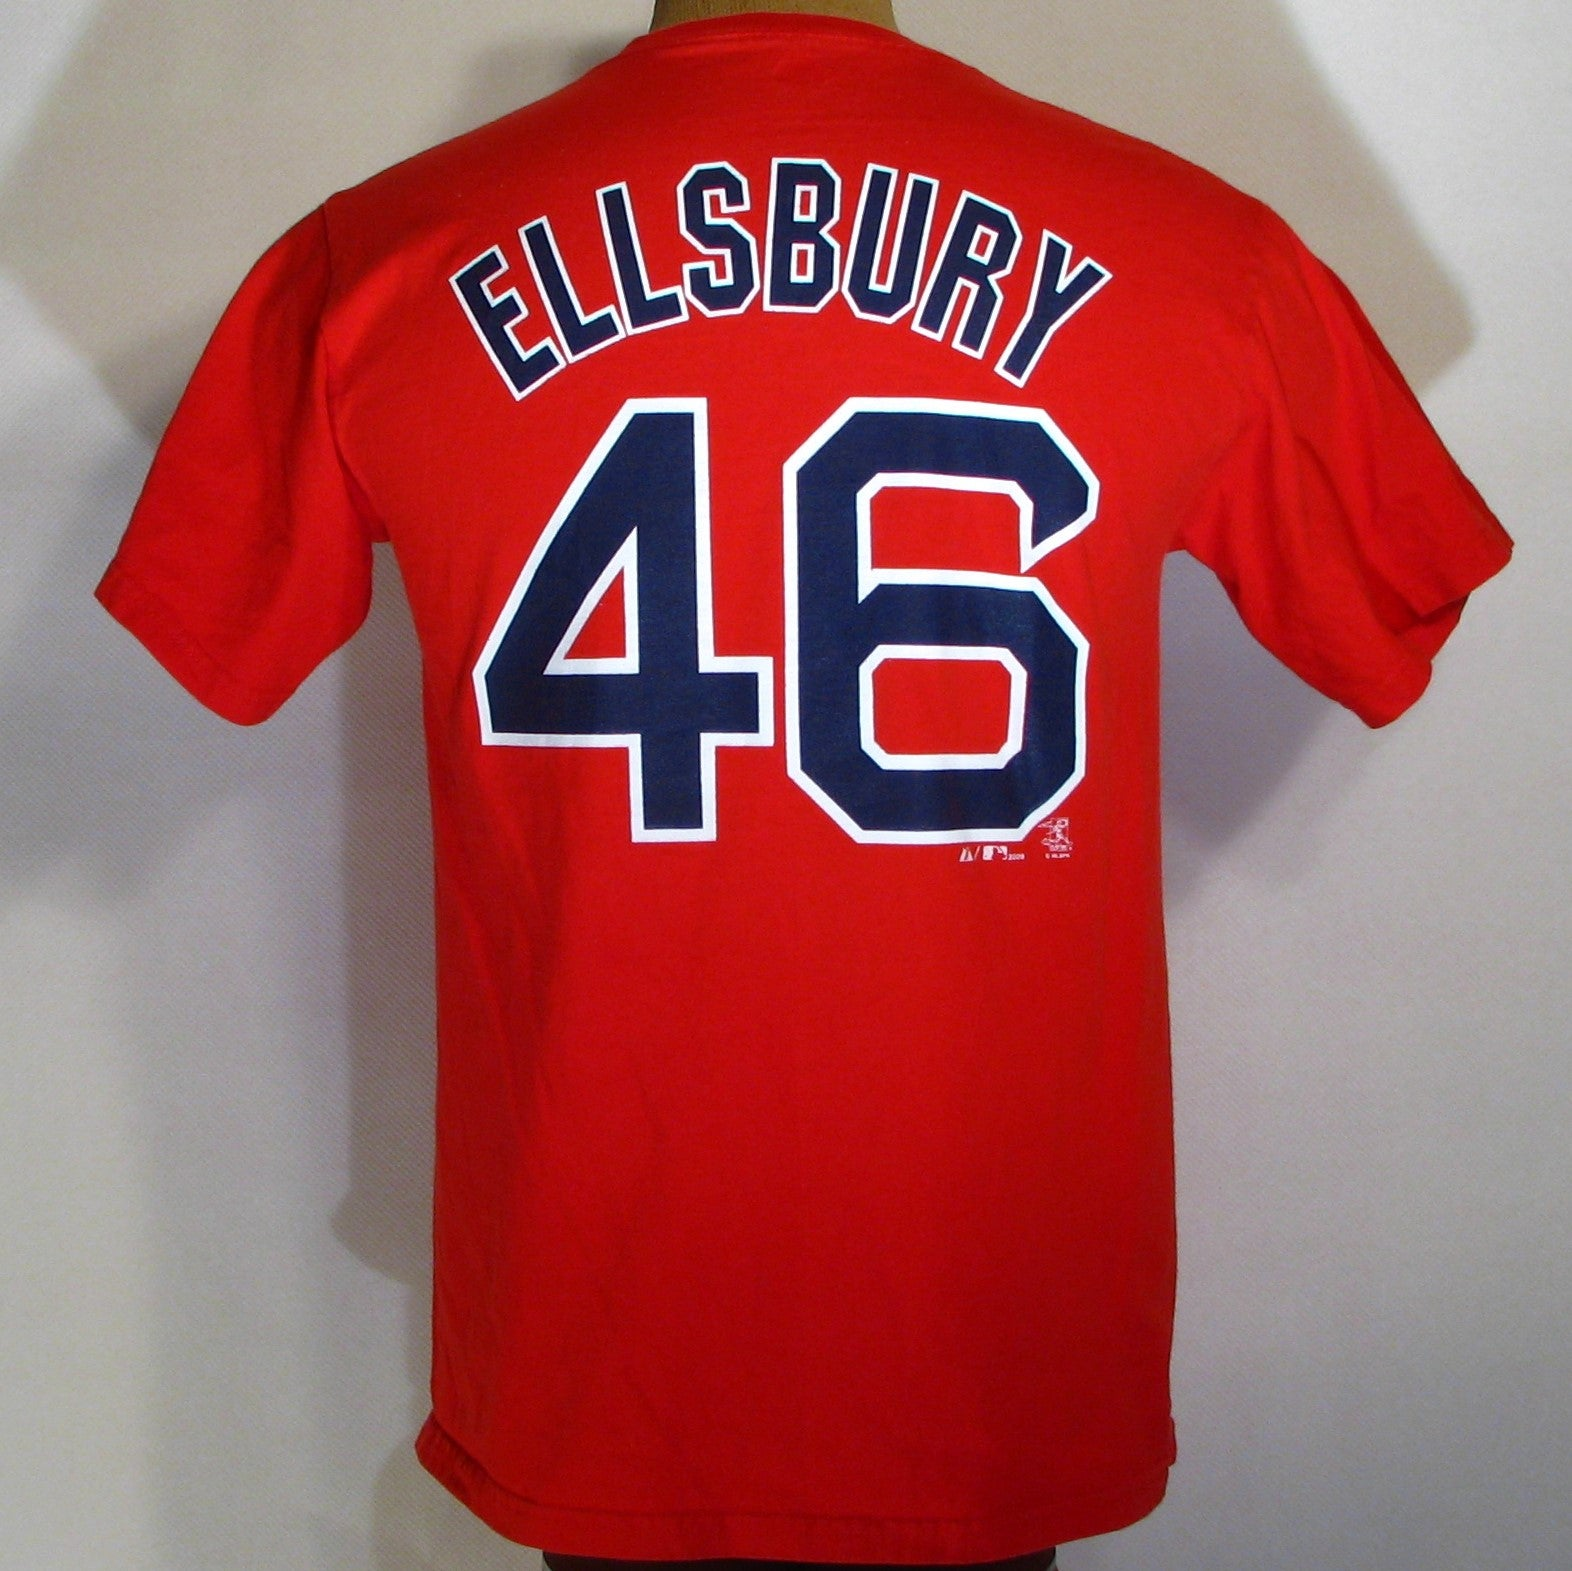 Boston Red Sox Ellsbury # 46 T-Shirt